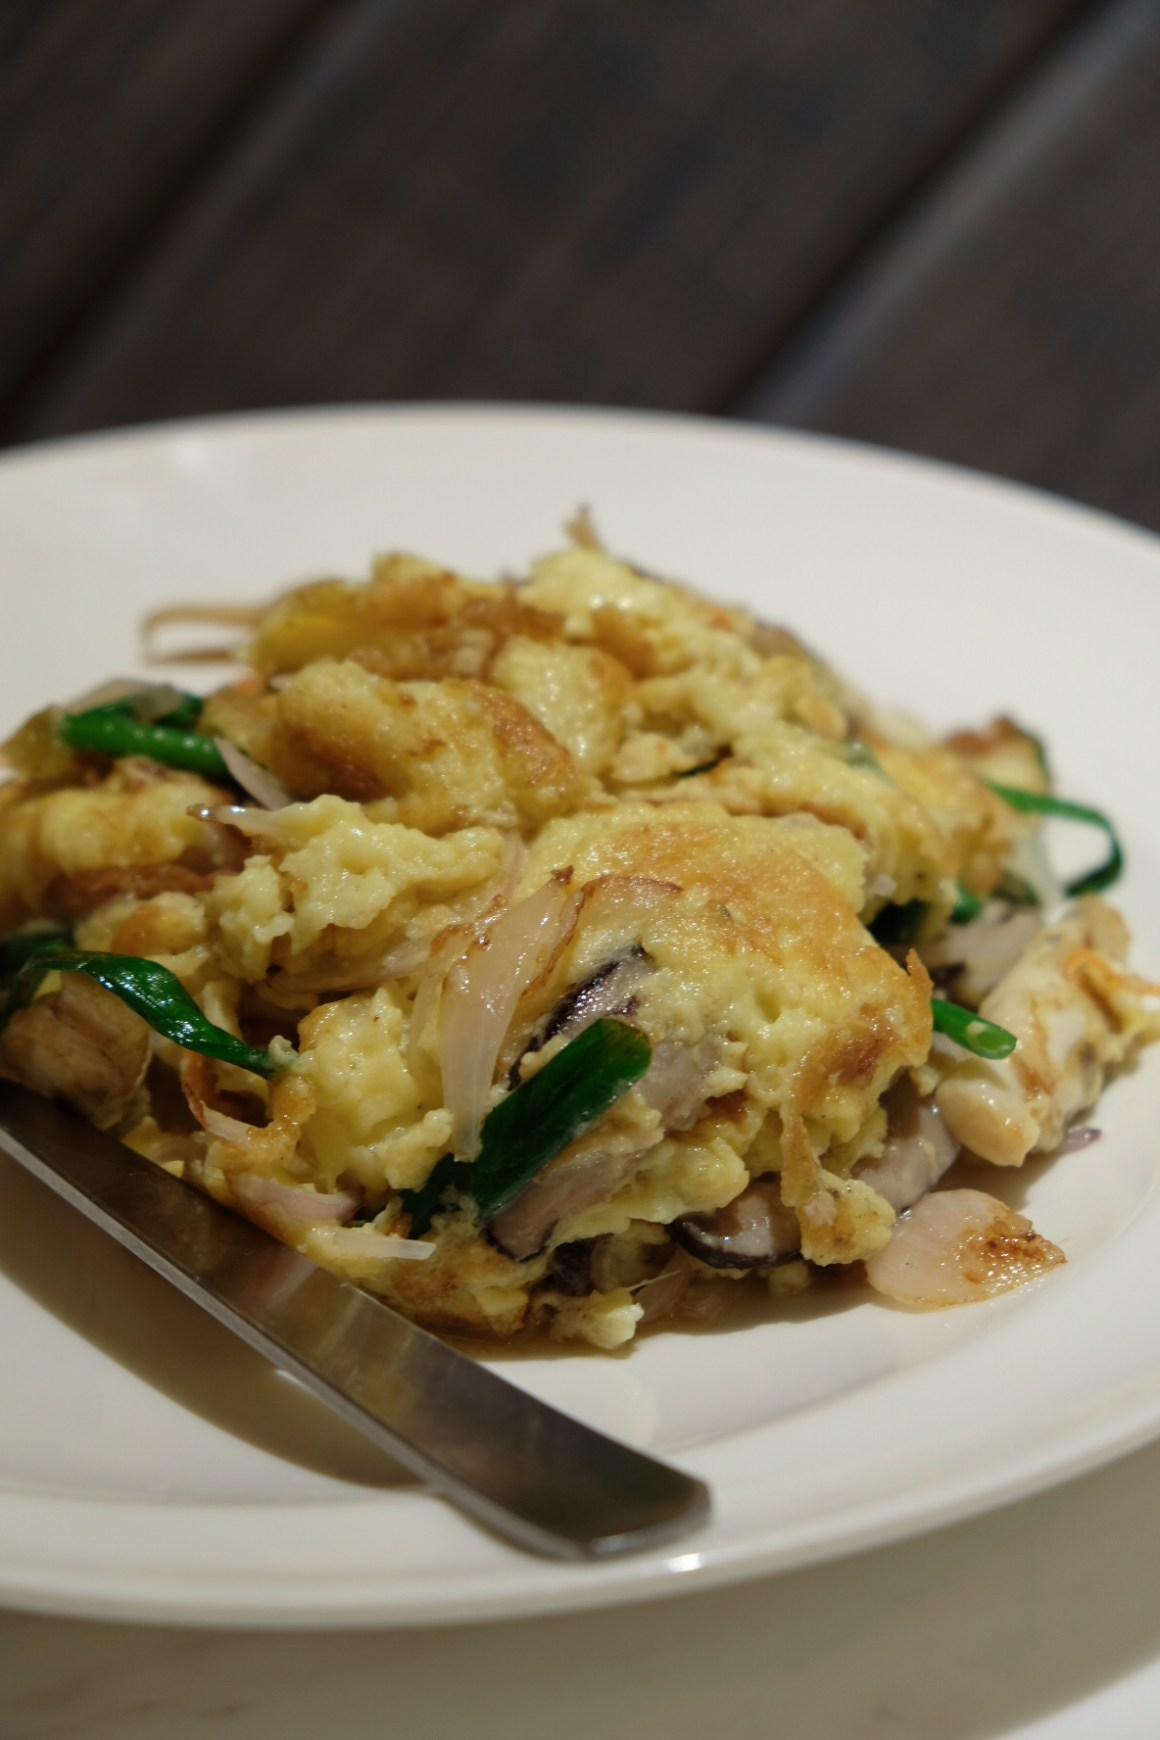 DUOTOU Clam Back At PUTIEN In 2019 - DUOTOU Clam Omelete 哆头蛏炒蛋